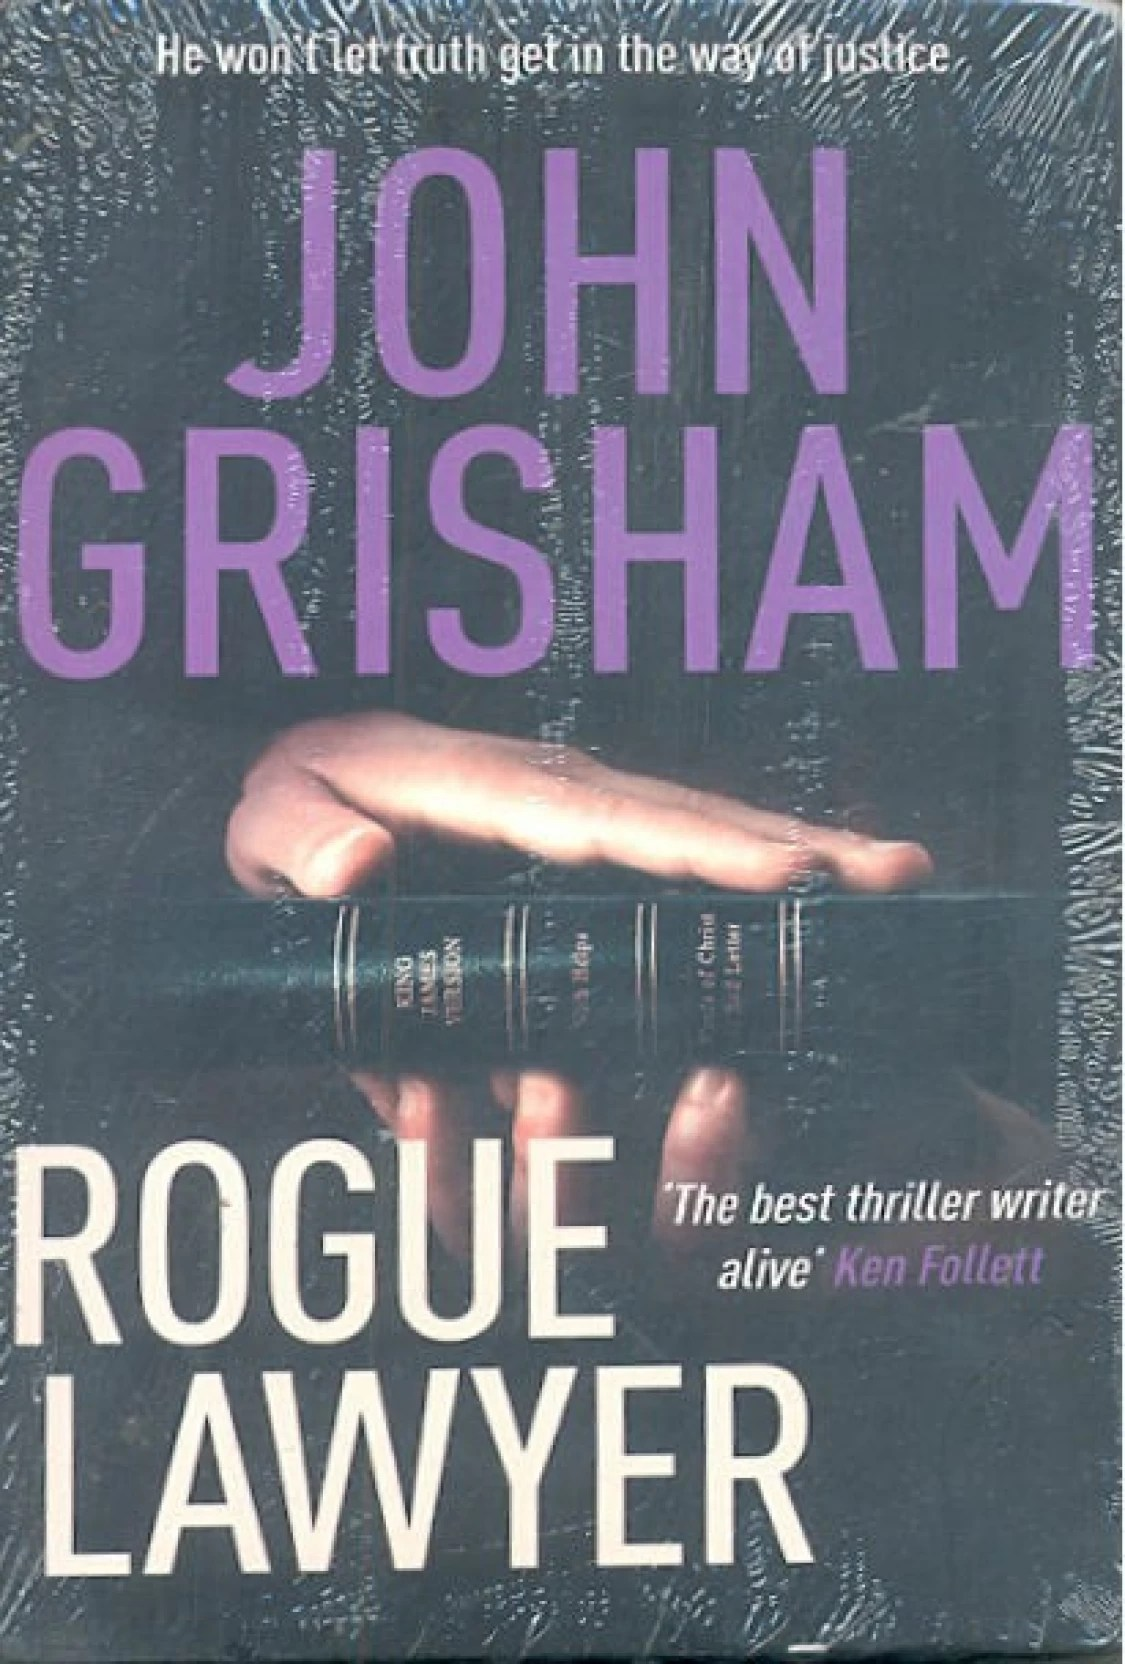 Camino Island Paperback Release Date Rogue Lawyer Buy Rogue Lawyer By John Grisham At Low Price In